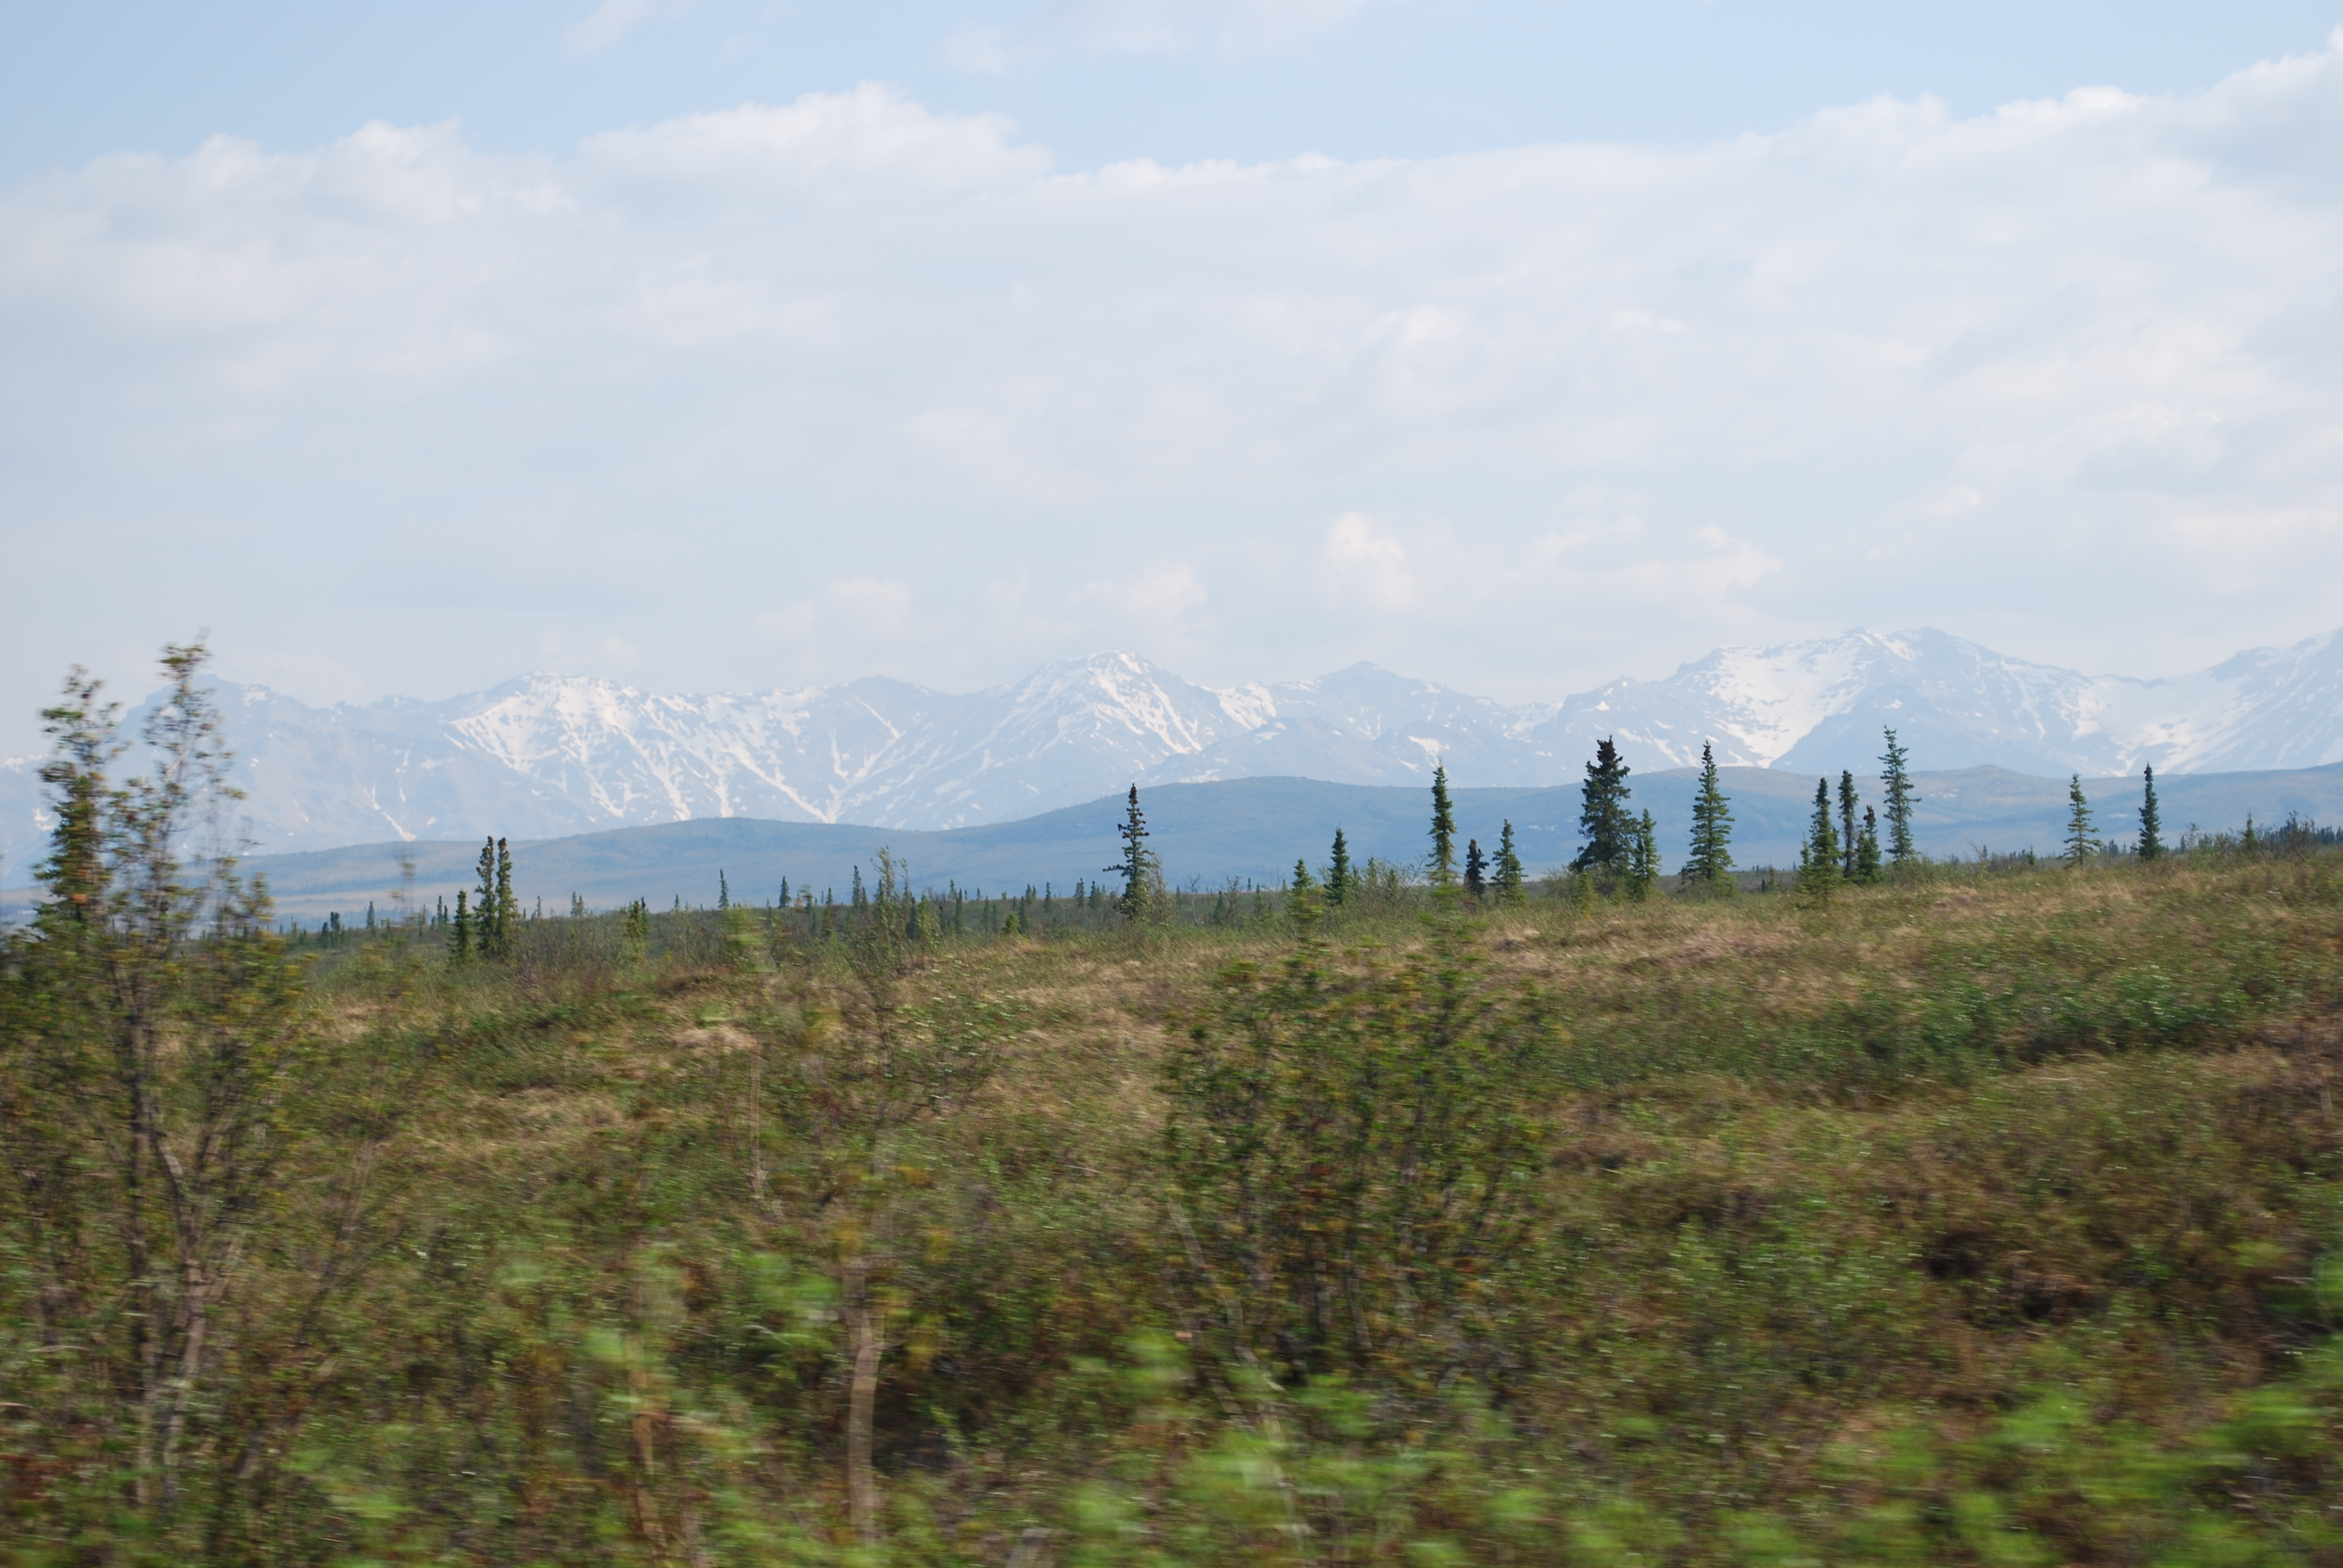 This is how the tundra looks during the early summer